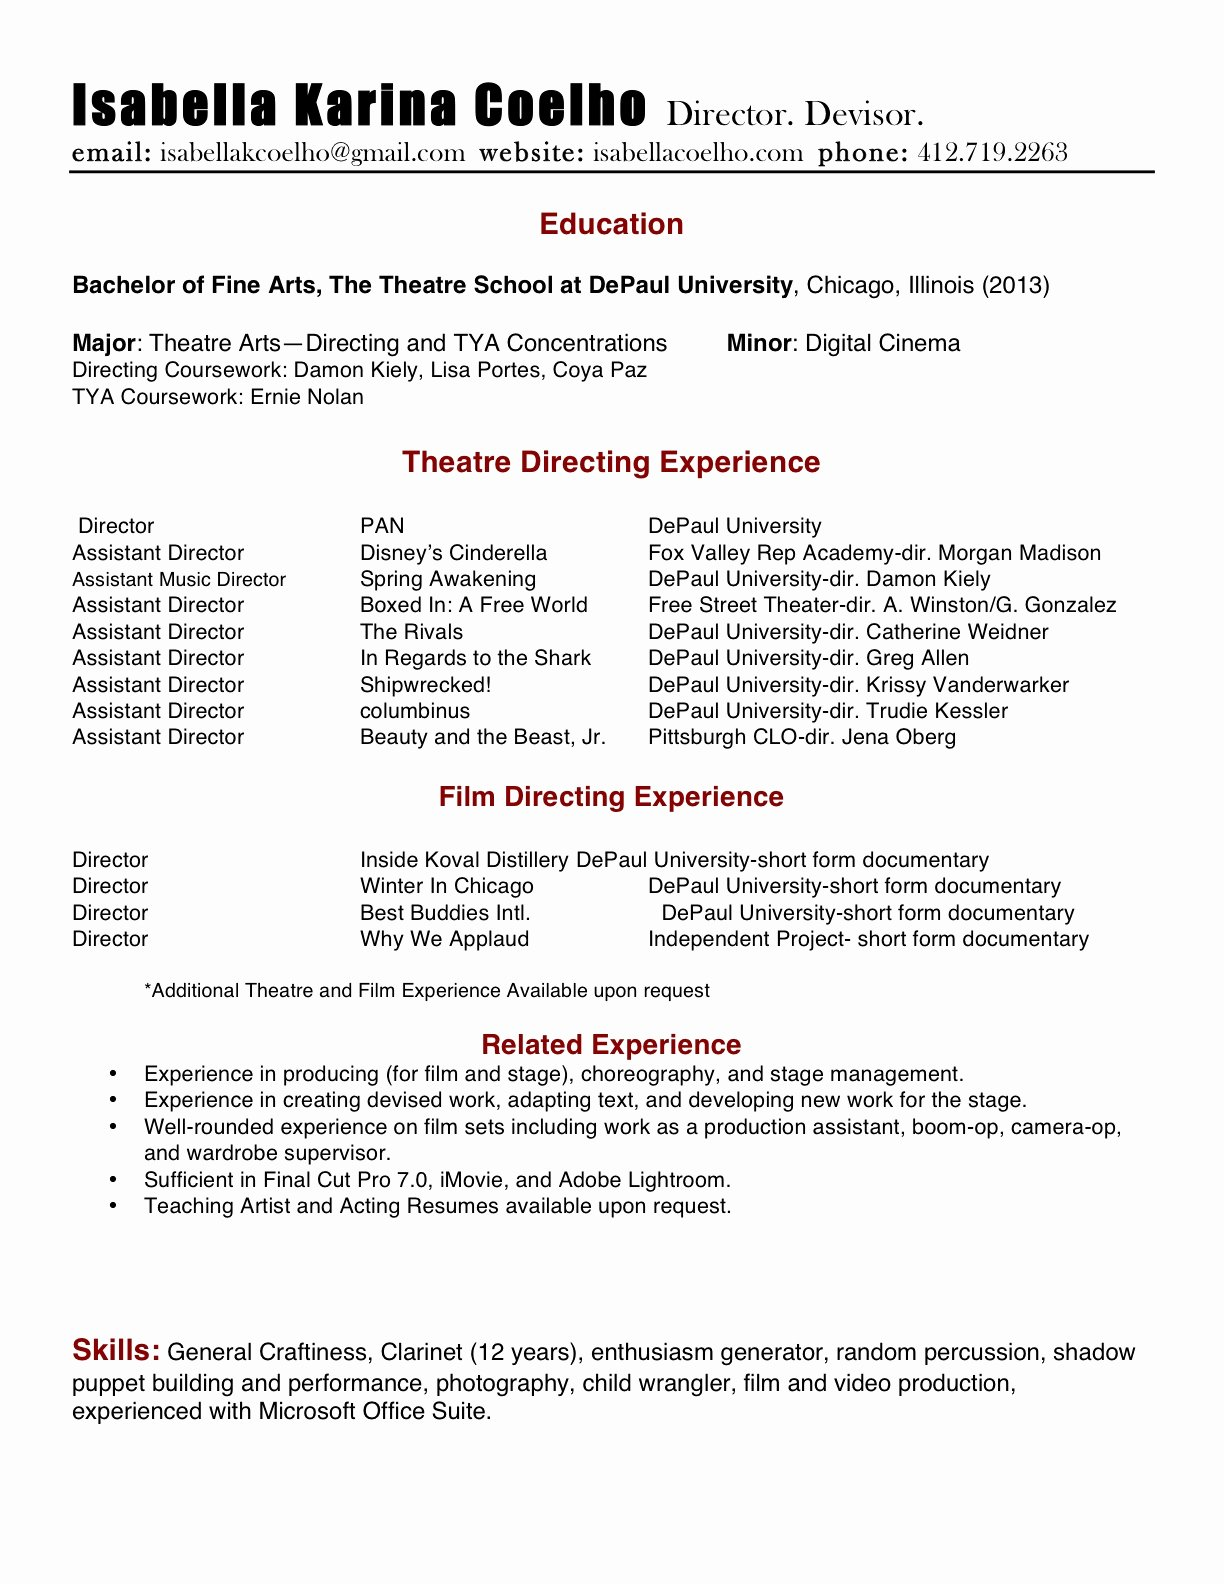 Tech theatre Resume Template Unique Best American Essays Five Points A Journal Of Literature and theater Directing Resume She